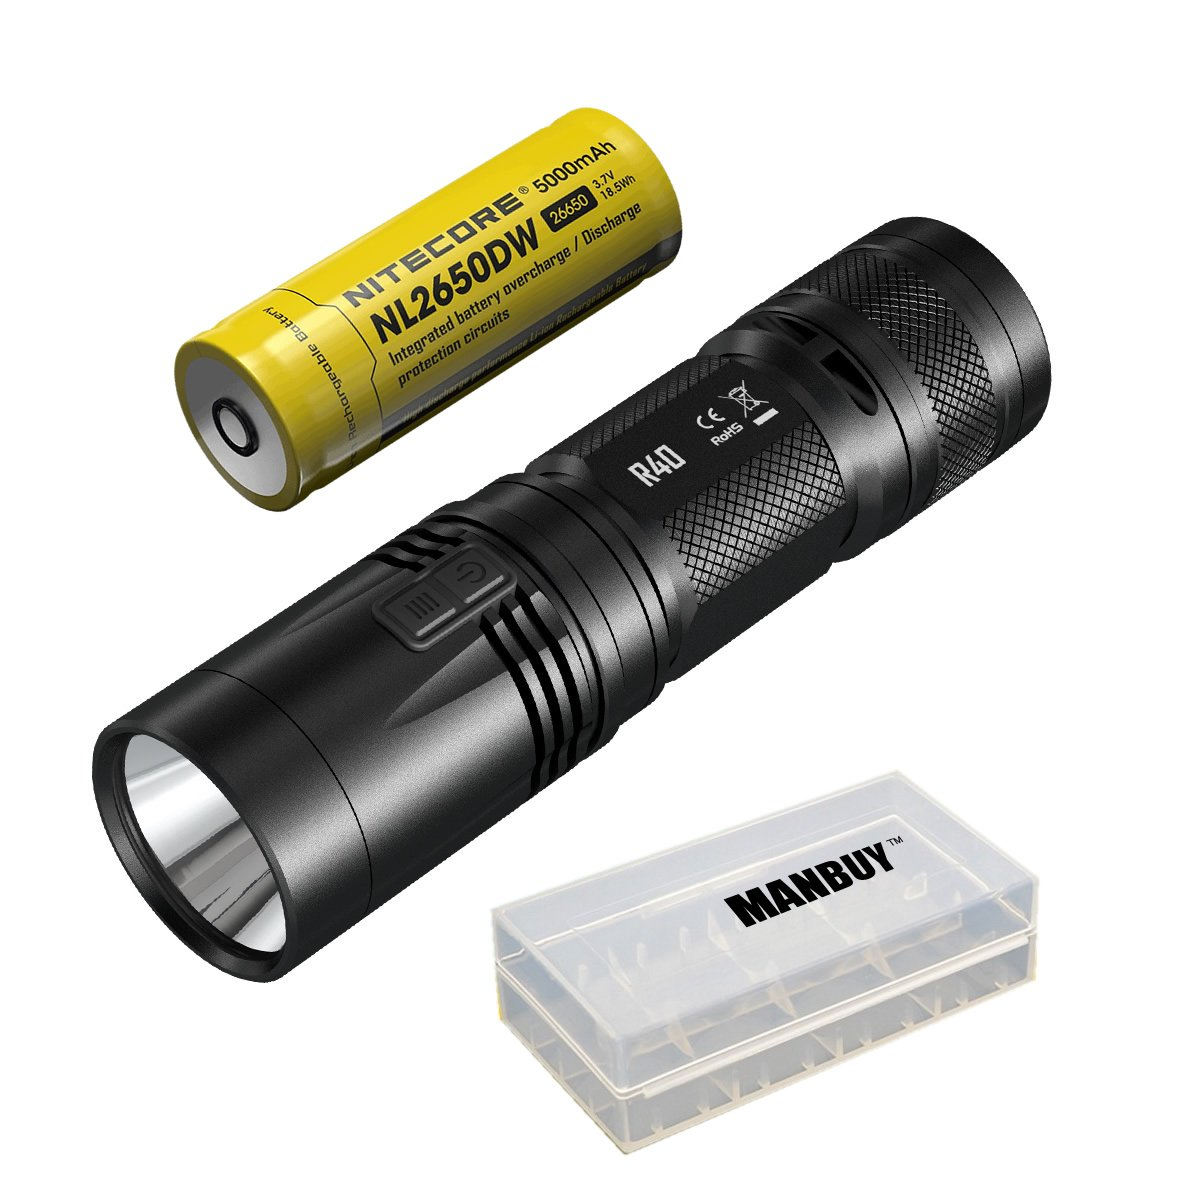 Manbuy NITECORE 1000 lumens XP-L HI LED Rechargeable White light With Battery Gear Outdoor Camping Search R40 Flash Light Hand lamp